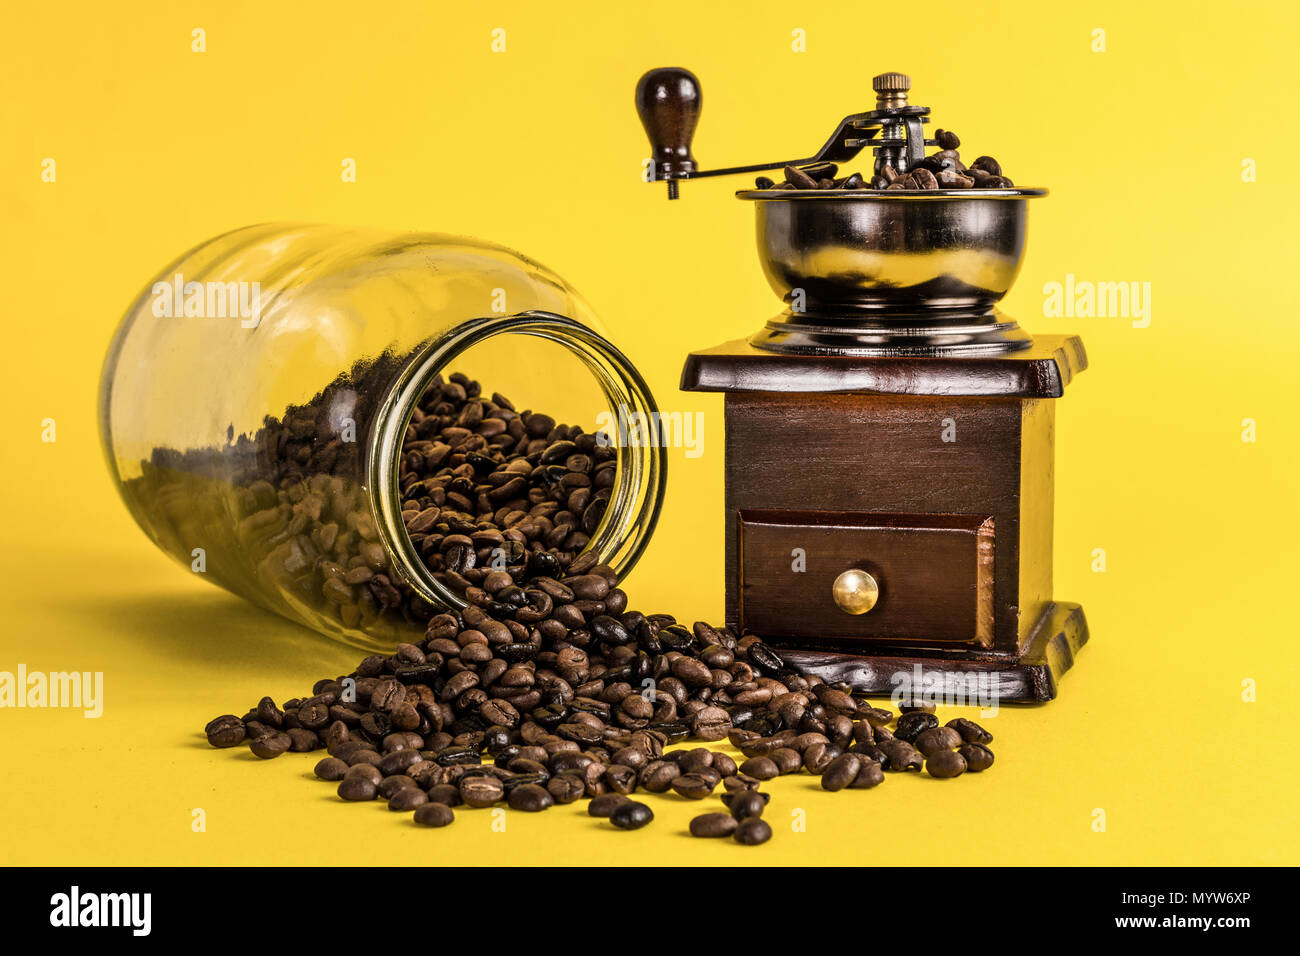 coffee-grinder-and-spilled-roasted-beans